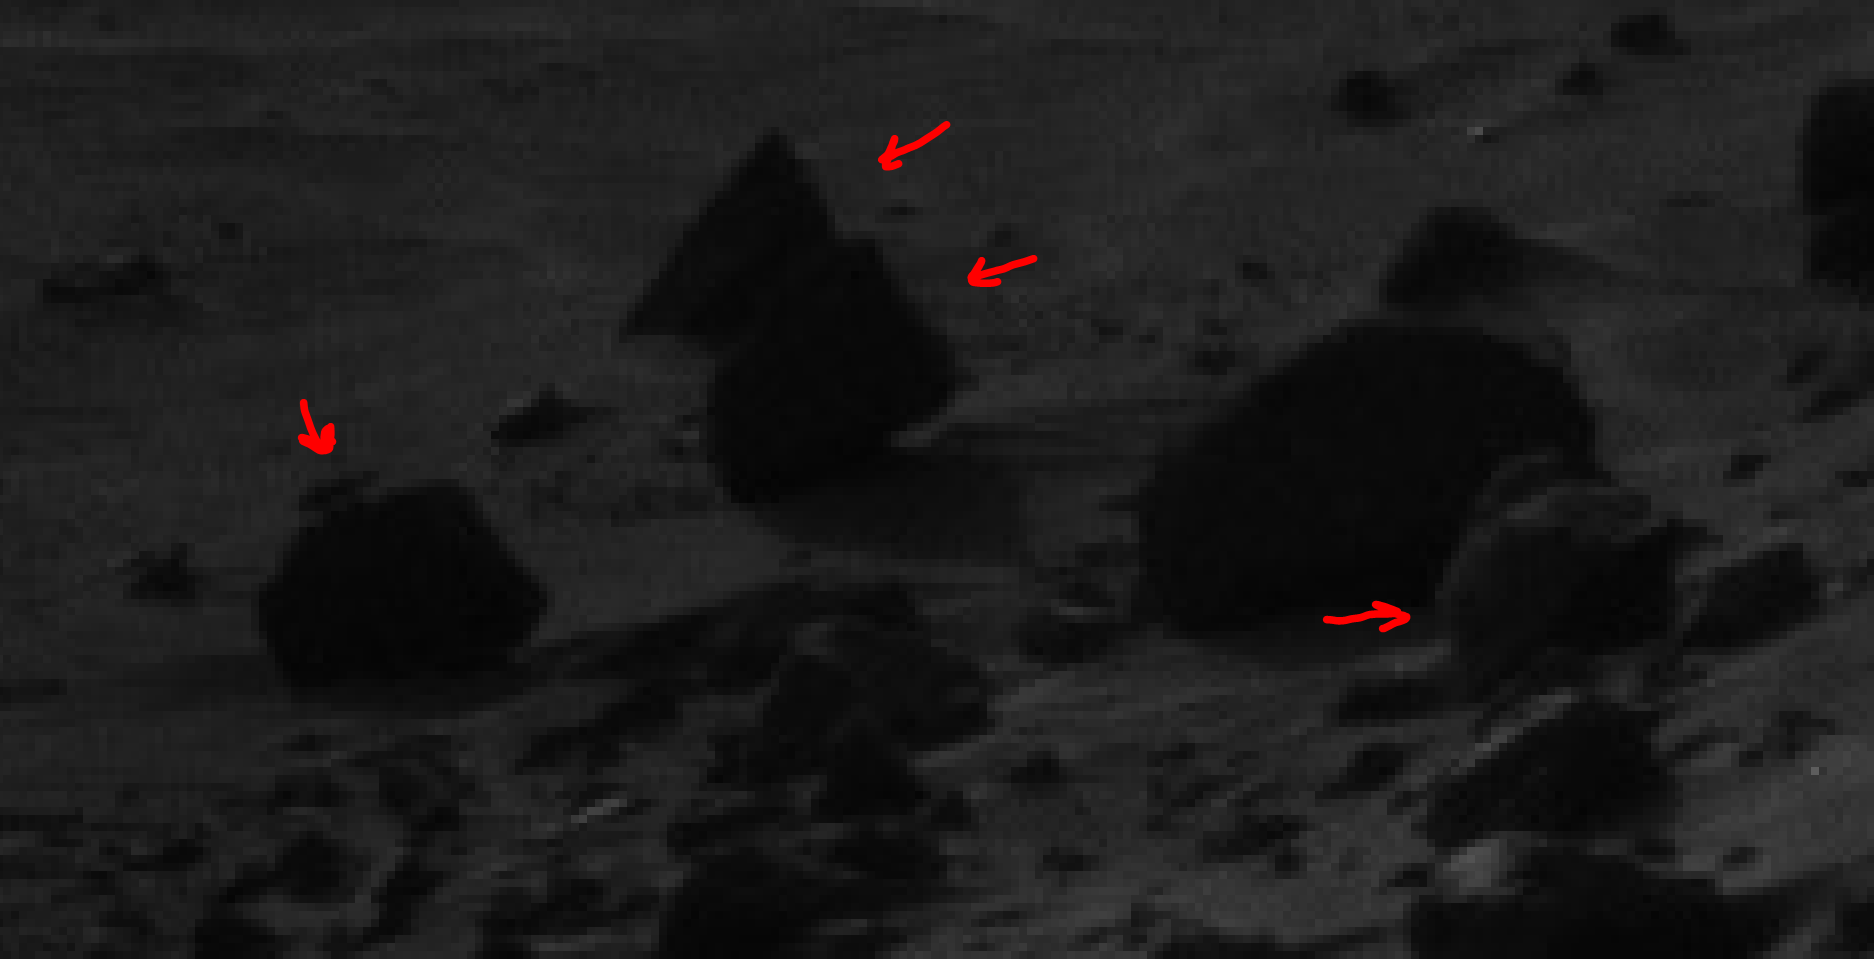 mars sol 1405 anomaly artifacts 22 was life on mars